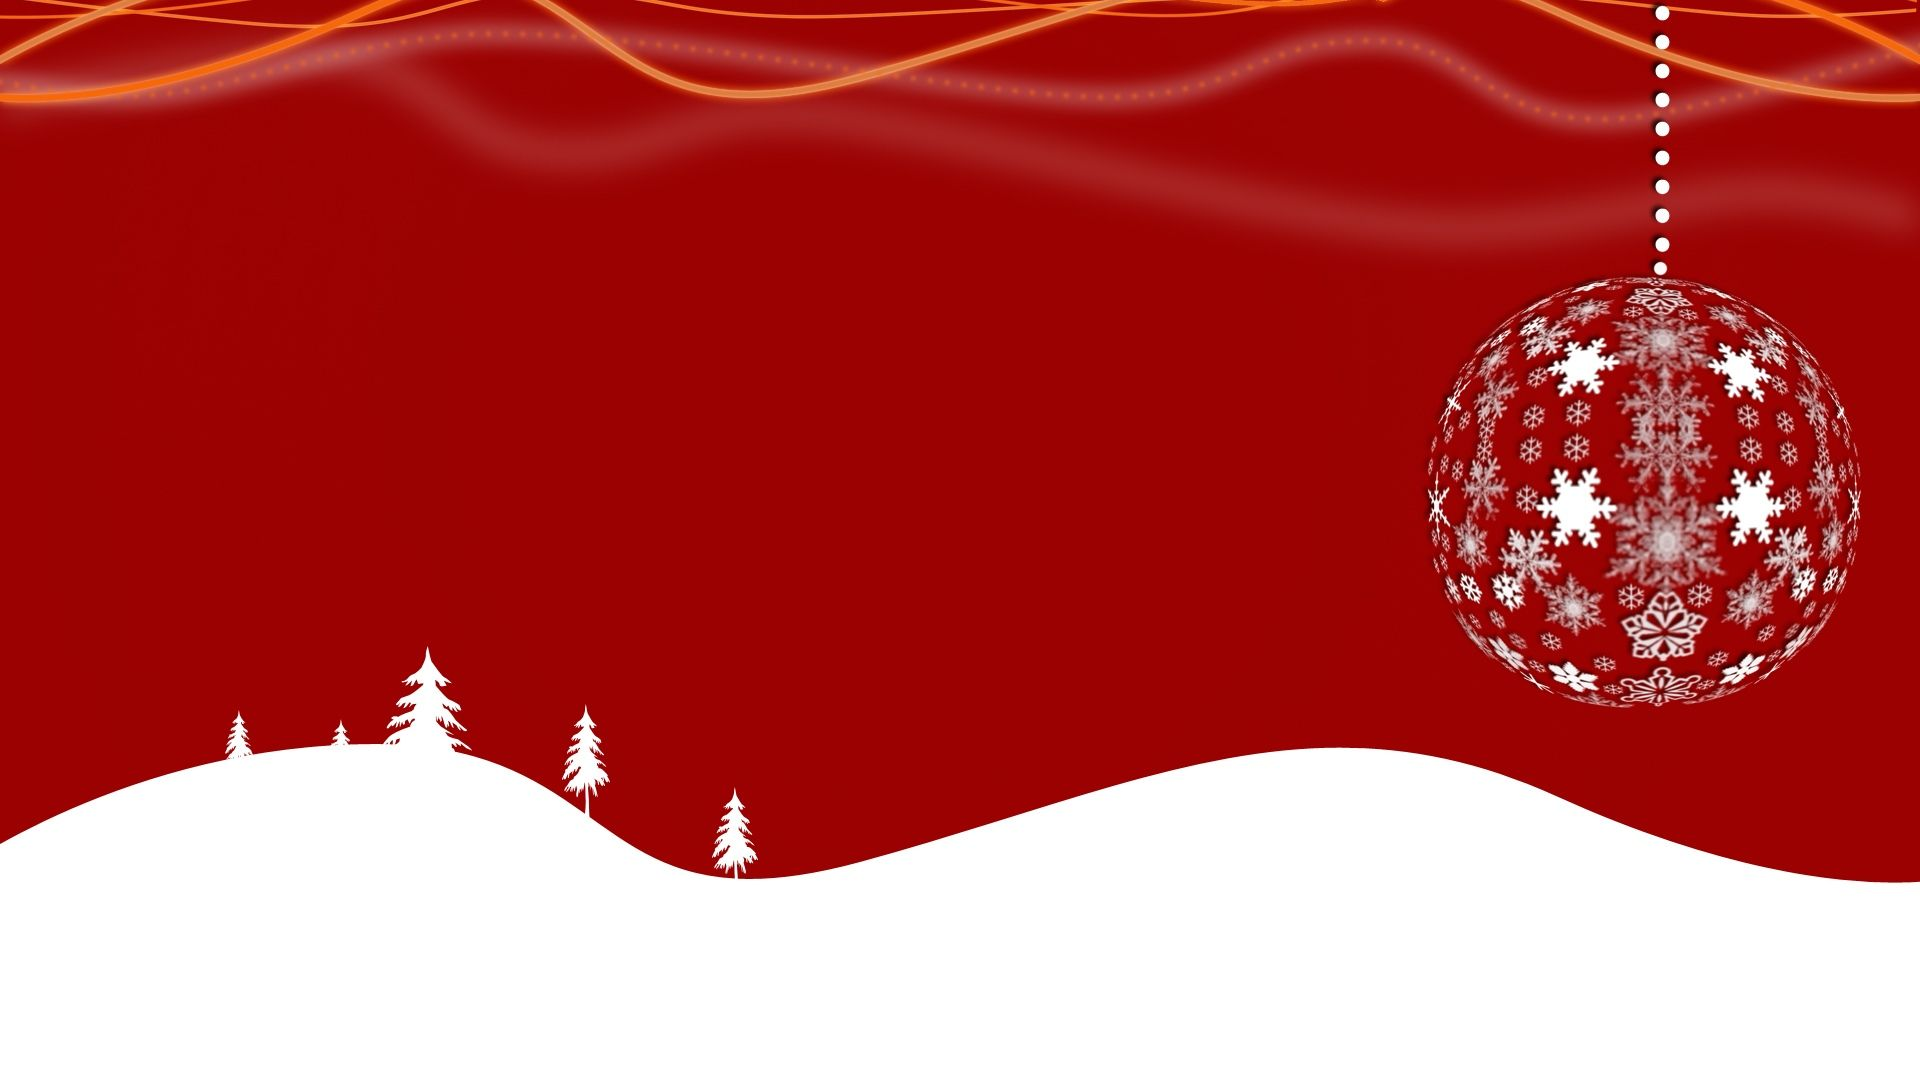 Christmas For Website download free wallpapers for pc in hd